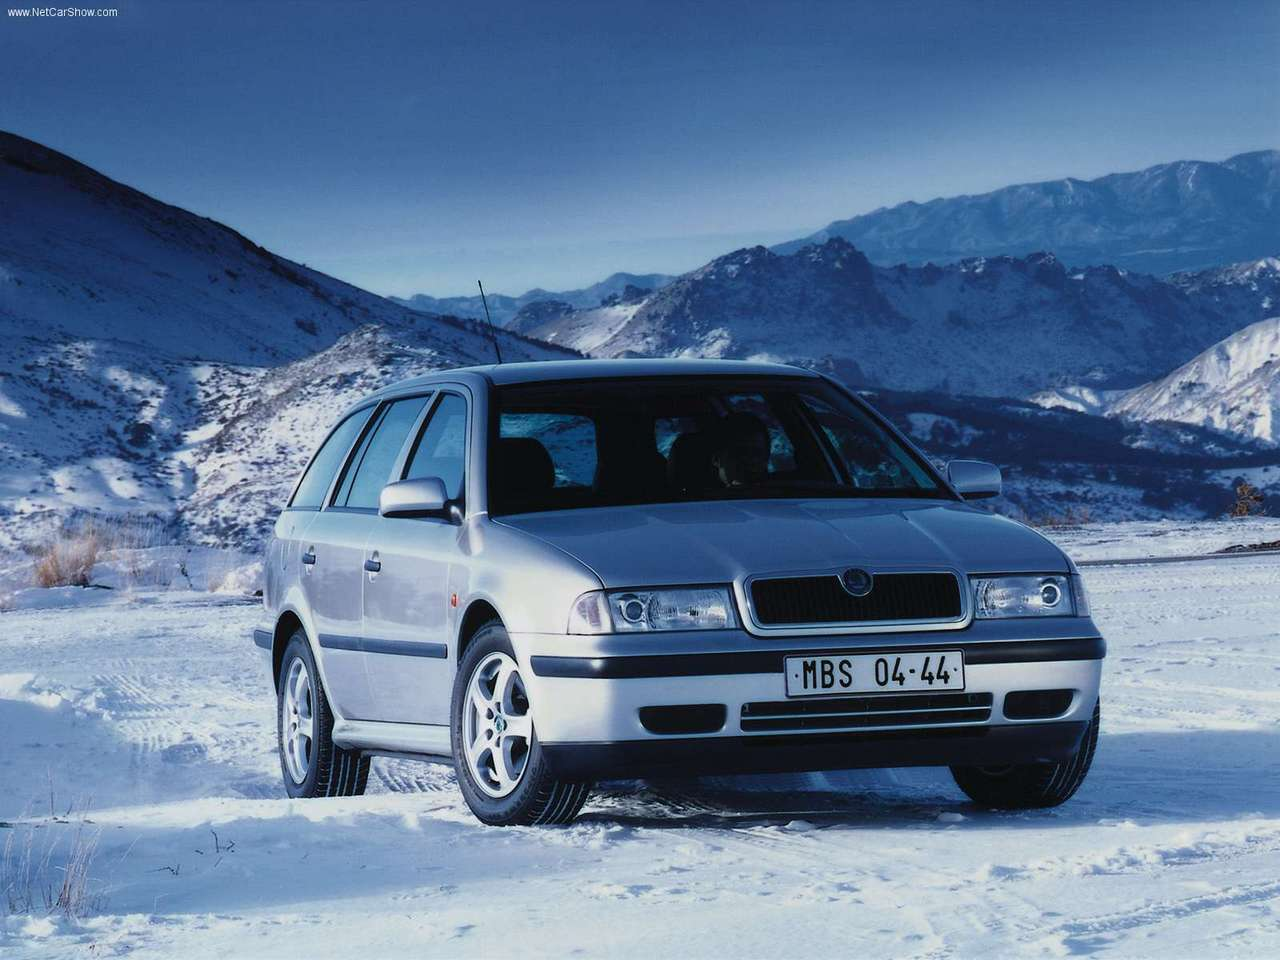 1999 skoda octavia combi 4x4 skoda cars. Black Bedroom Furniture Sets. Home Design Ideas